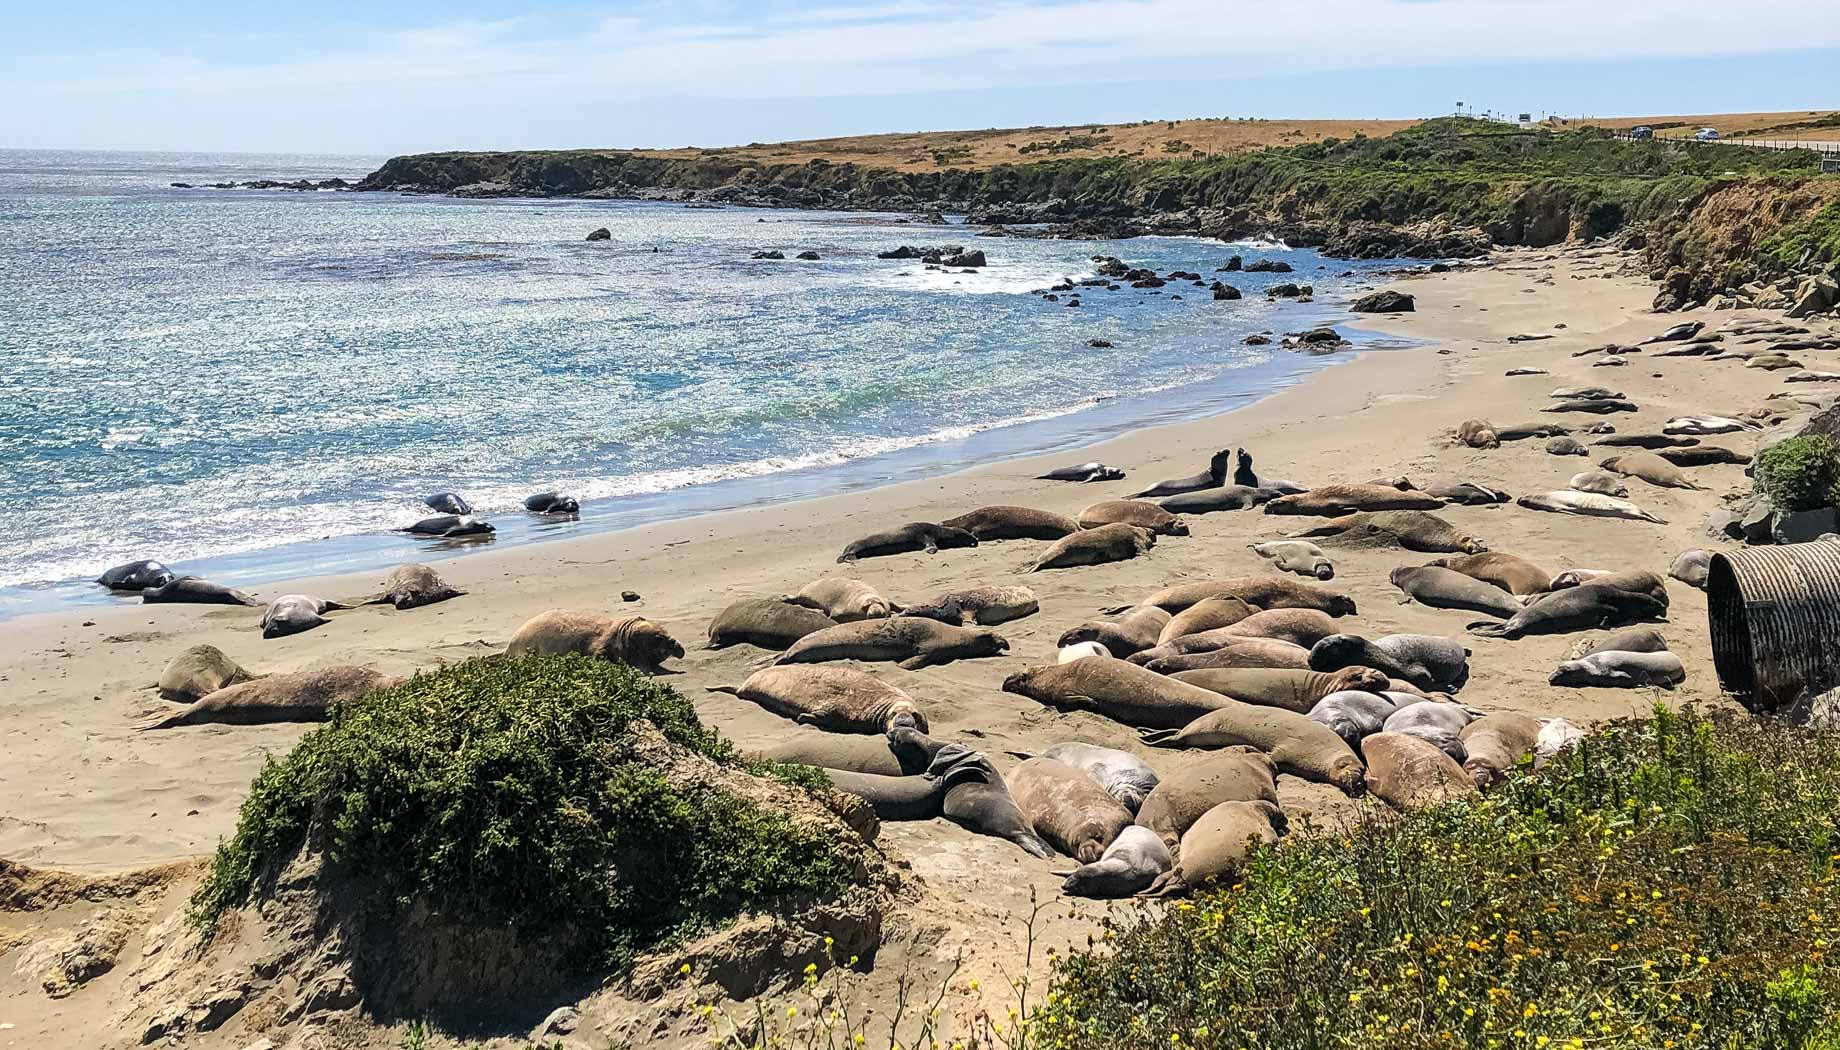 Sea lions sleeping on the beach on the Surf N Turf quest